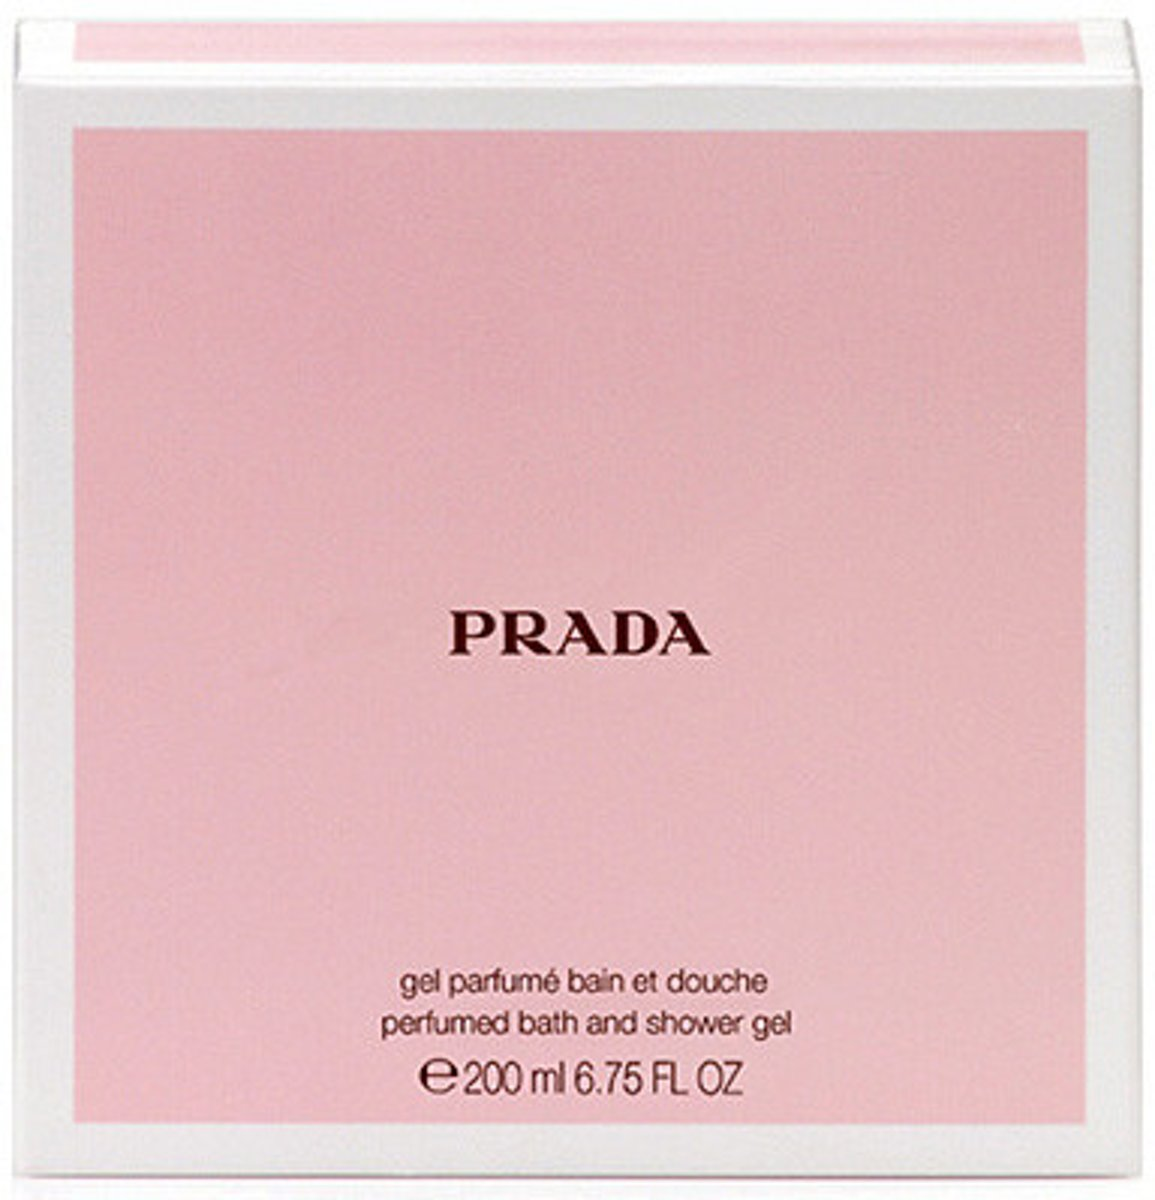 Prada - Amber bath and shower gel 200ml